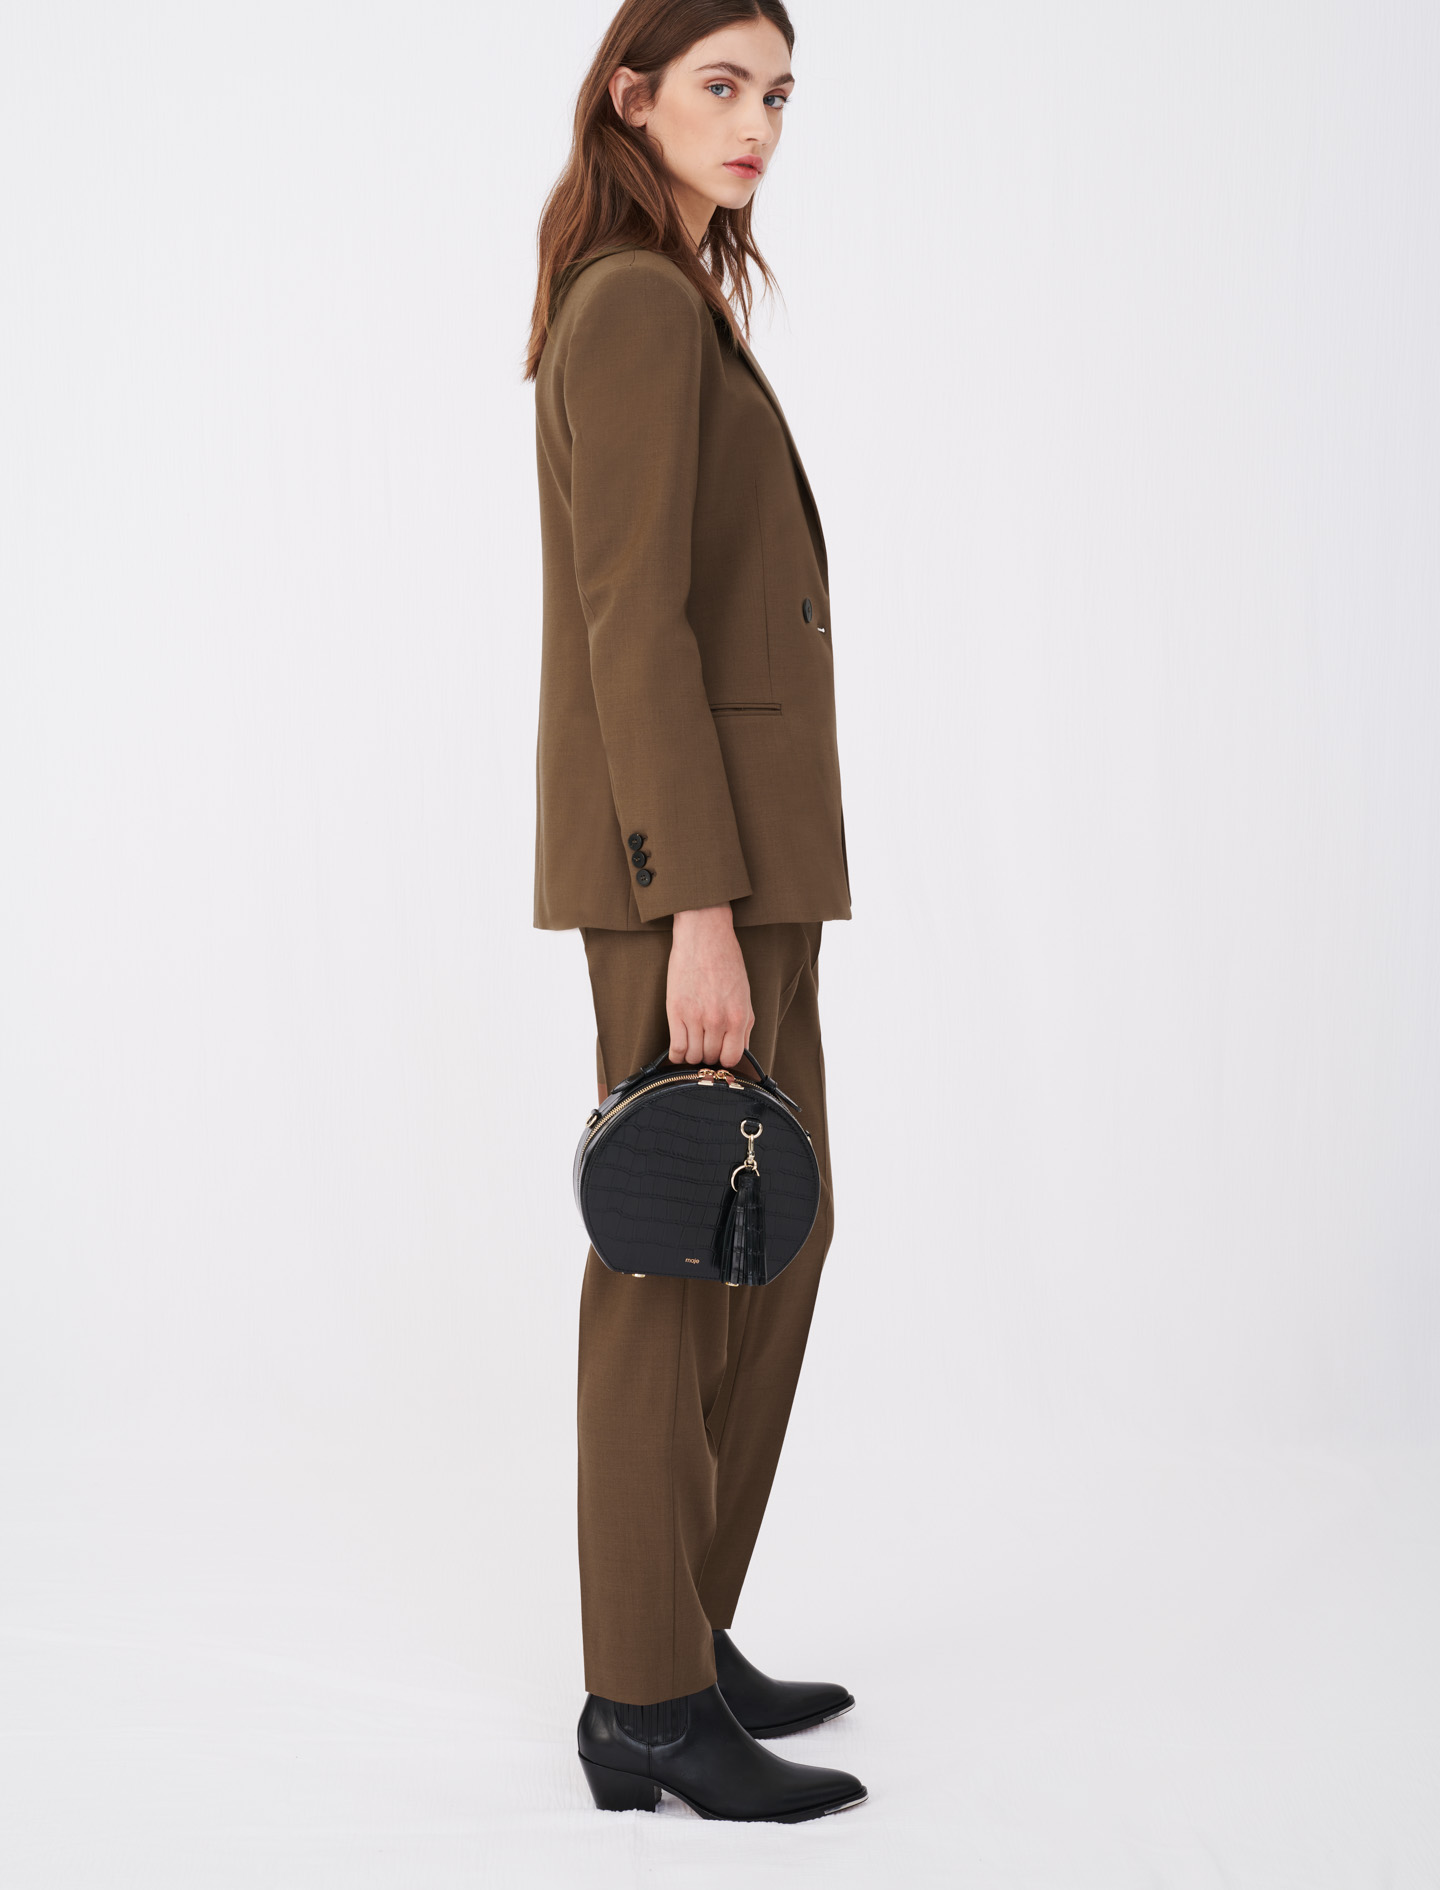 Fitted suit jacket - Brown